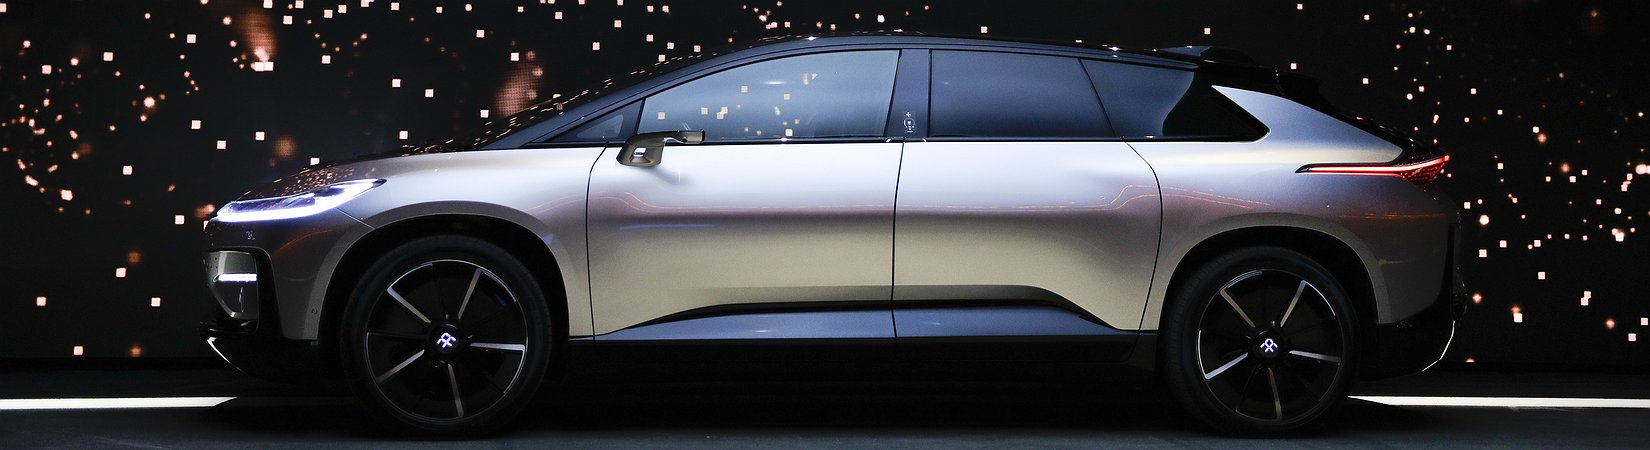 Faraday Future's first luxury electric SUV is here. Time for Tesla to worry?